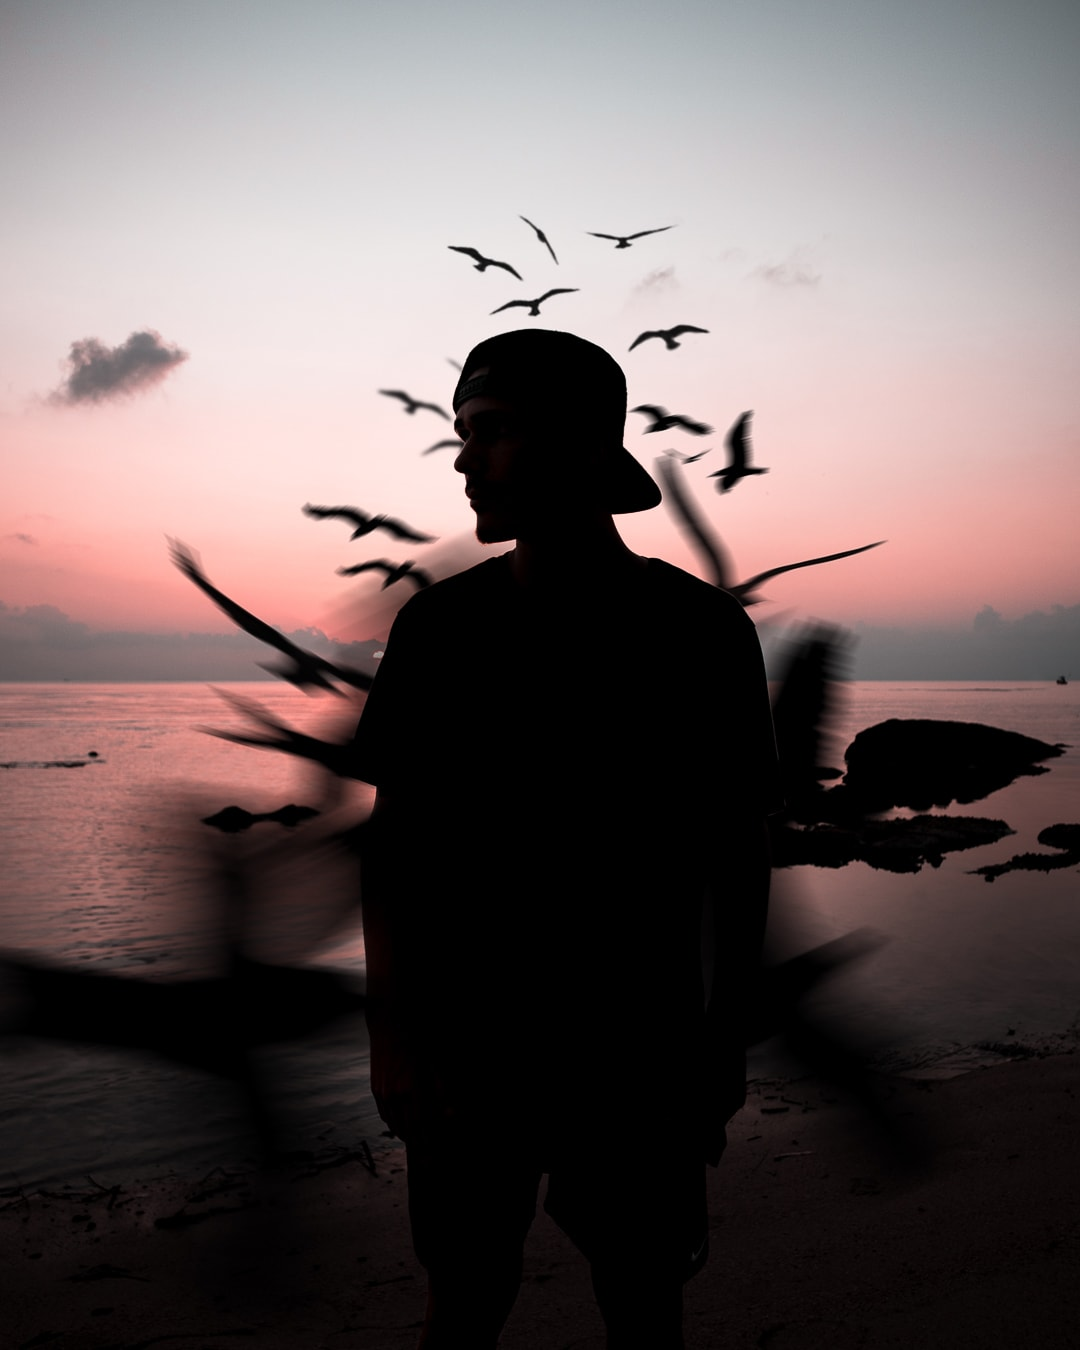 Portrait and composition of Athos Abreu on the beach at sunset. Birds fly in circles around him.